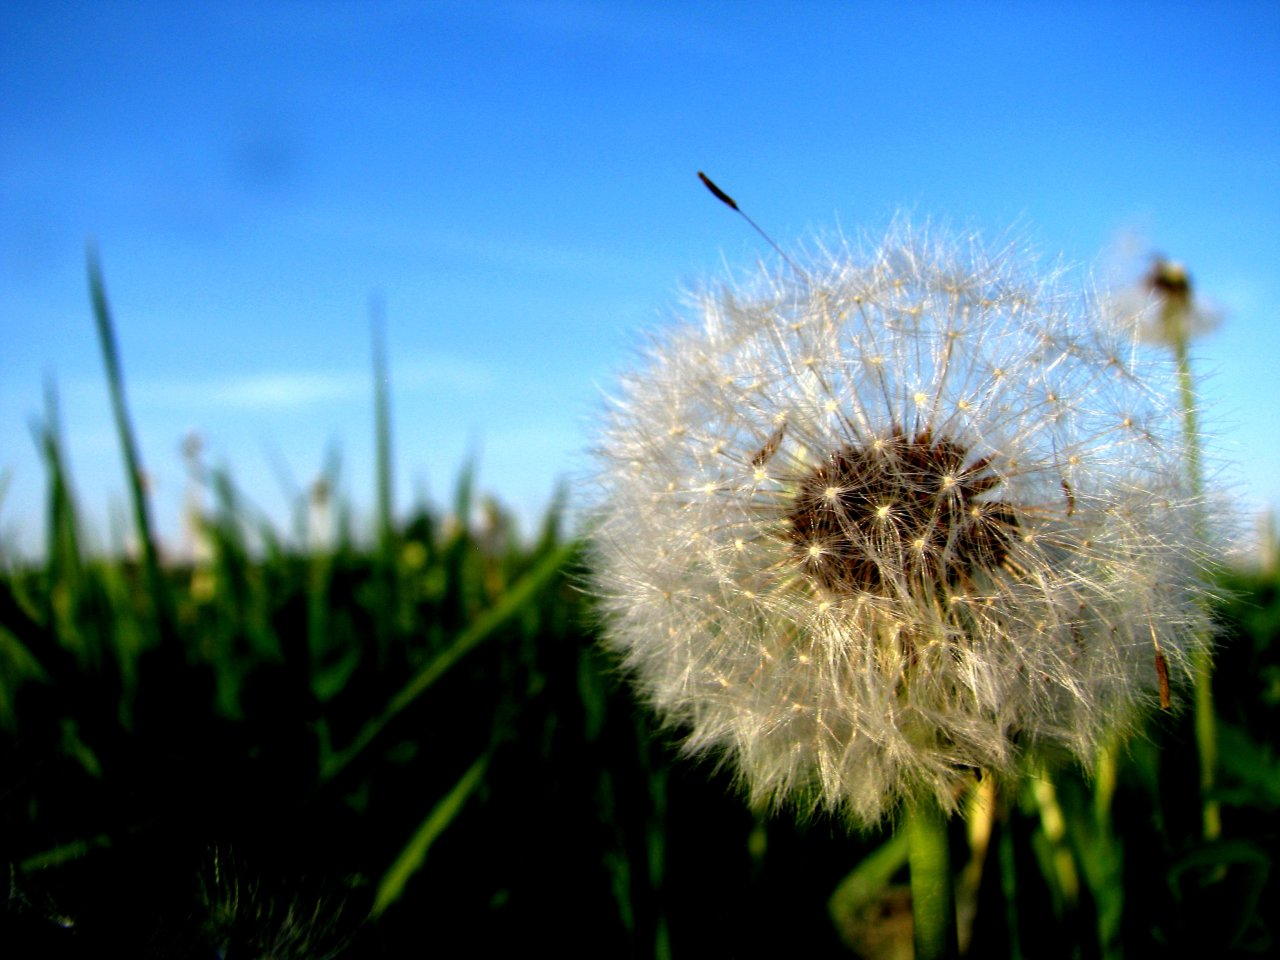 … a dandilion seed takes flight …